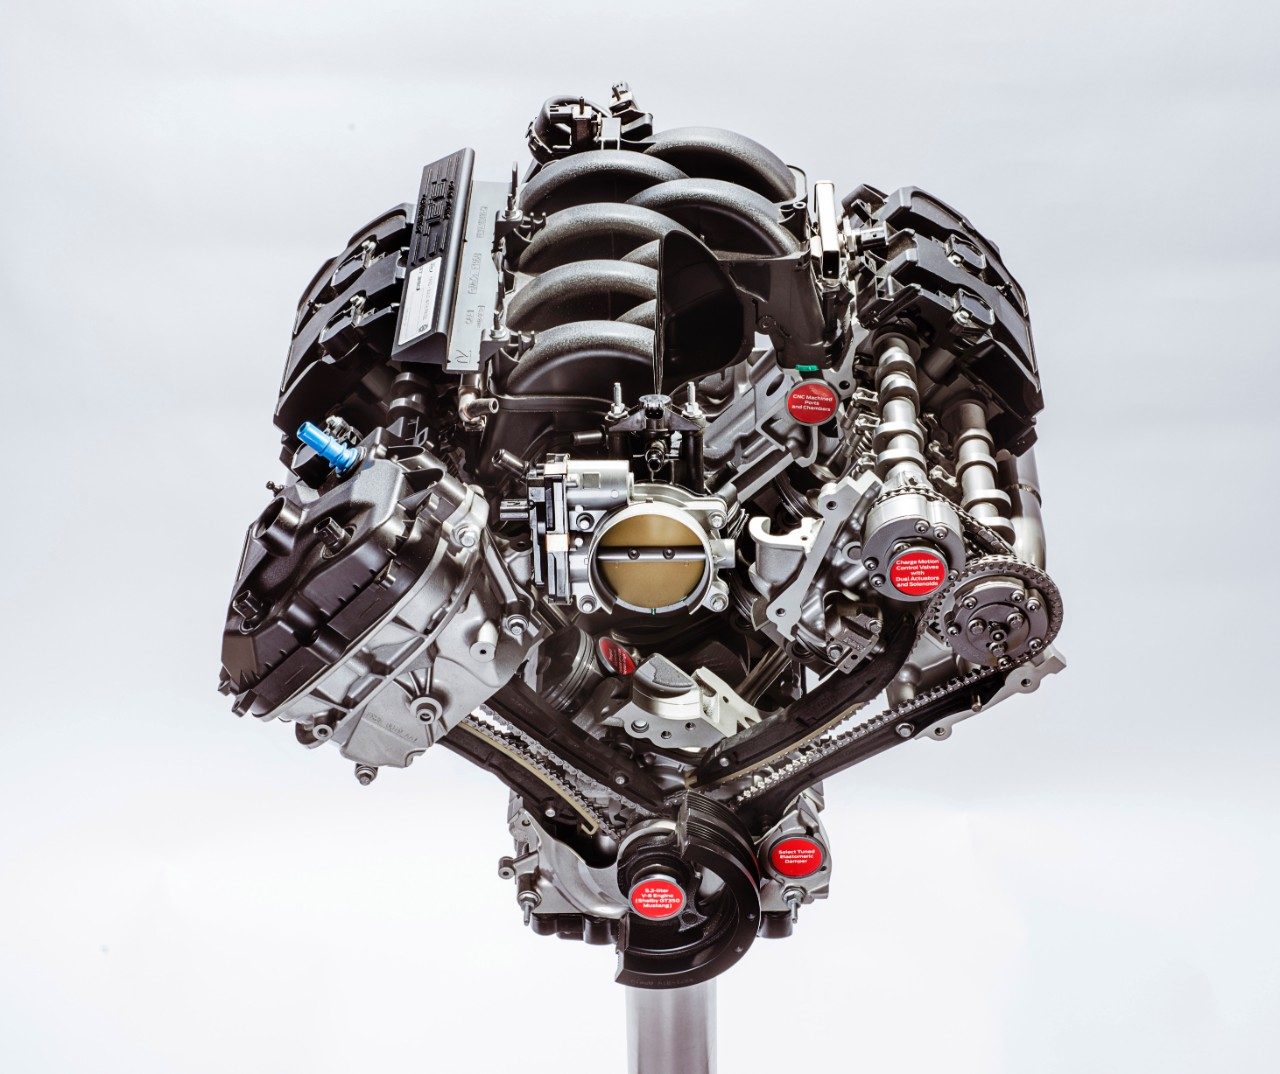 The New Lt1 V8 5th Generation Gm Small Block That Will: Power(plant) Rankings: We Unveil Your Top 10 American